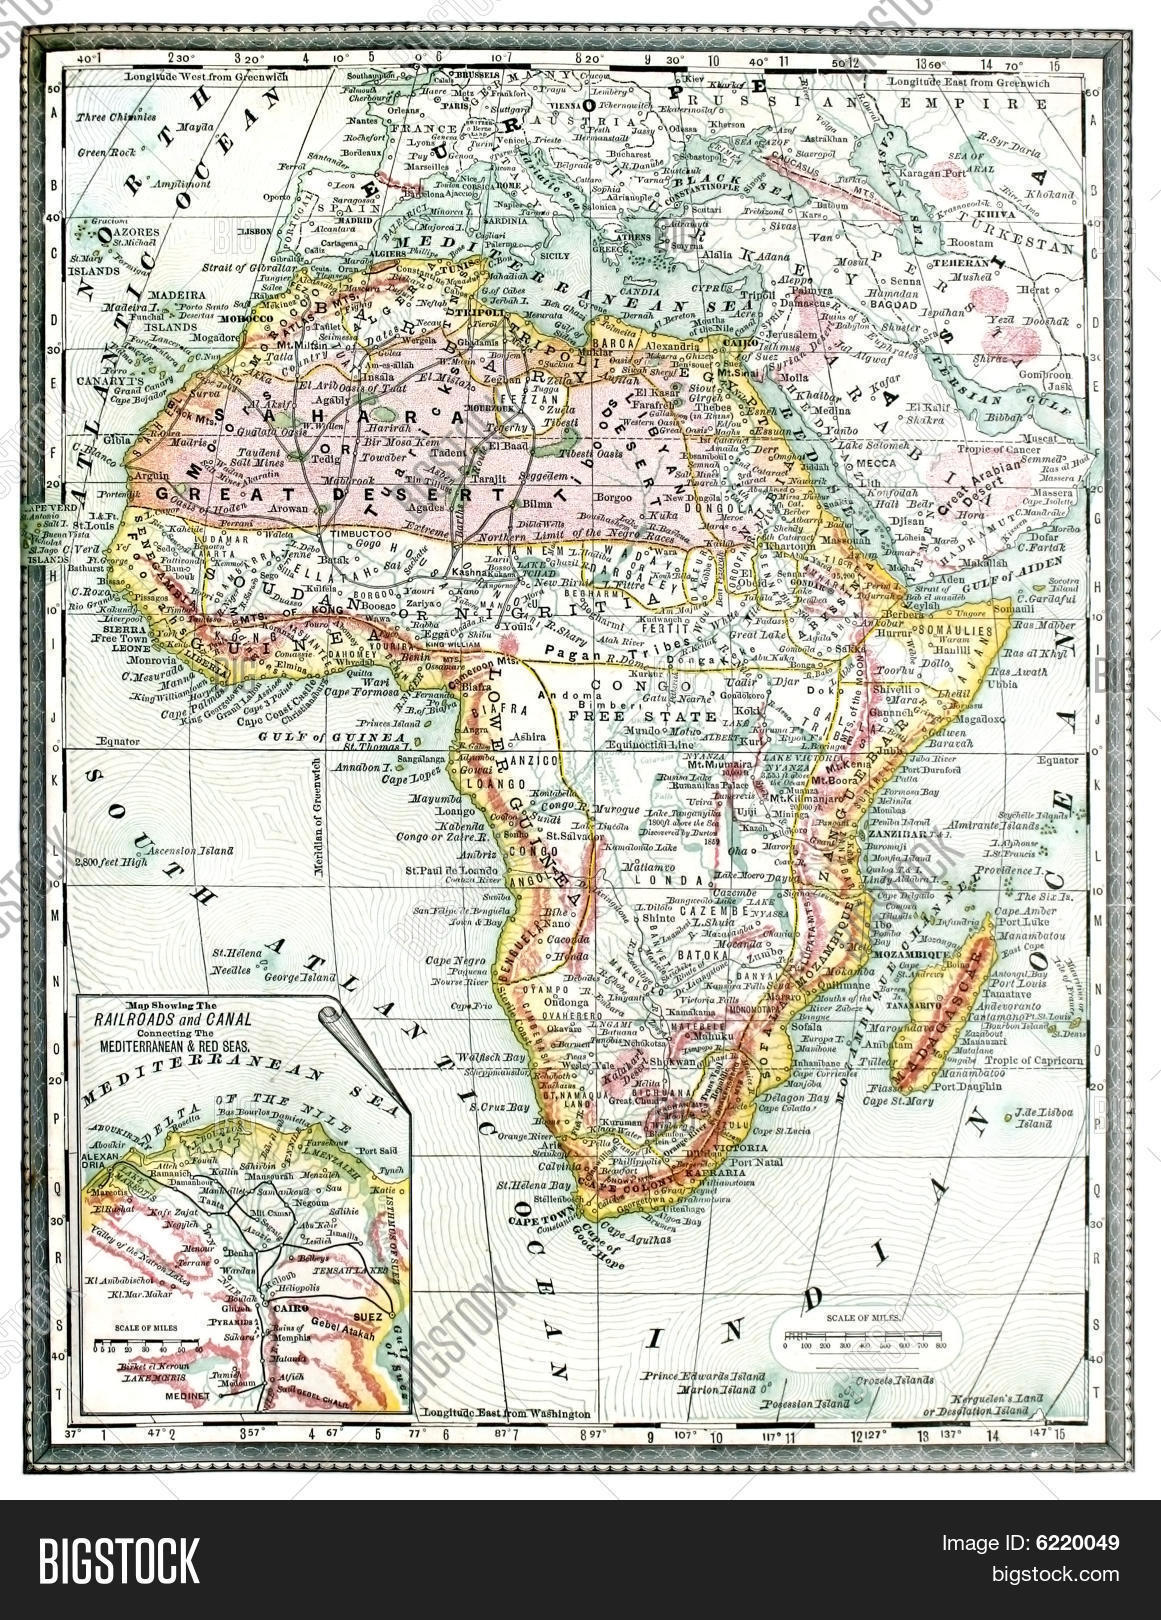 Old Map Africa Image & Photo (Free Trial) | Bigstock